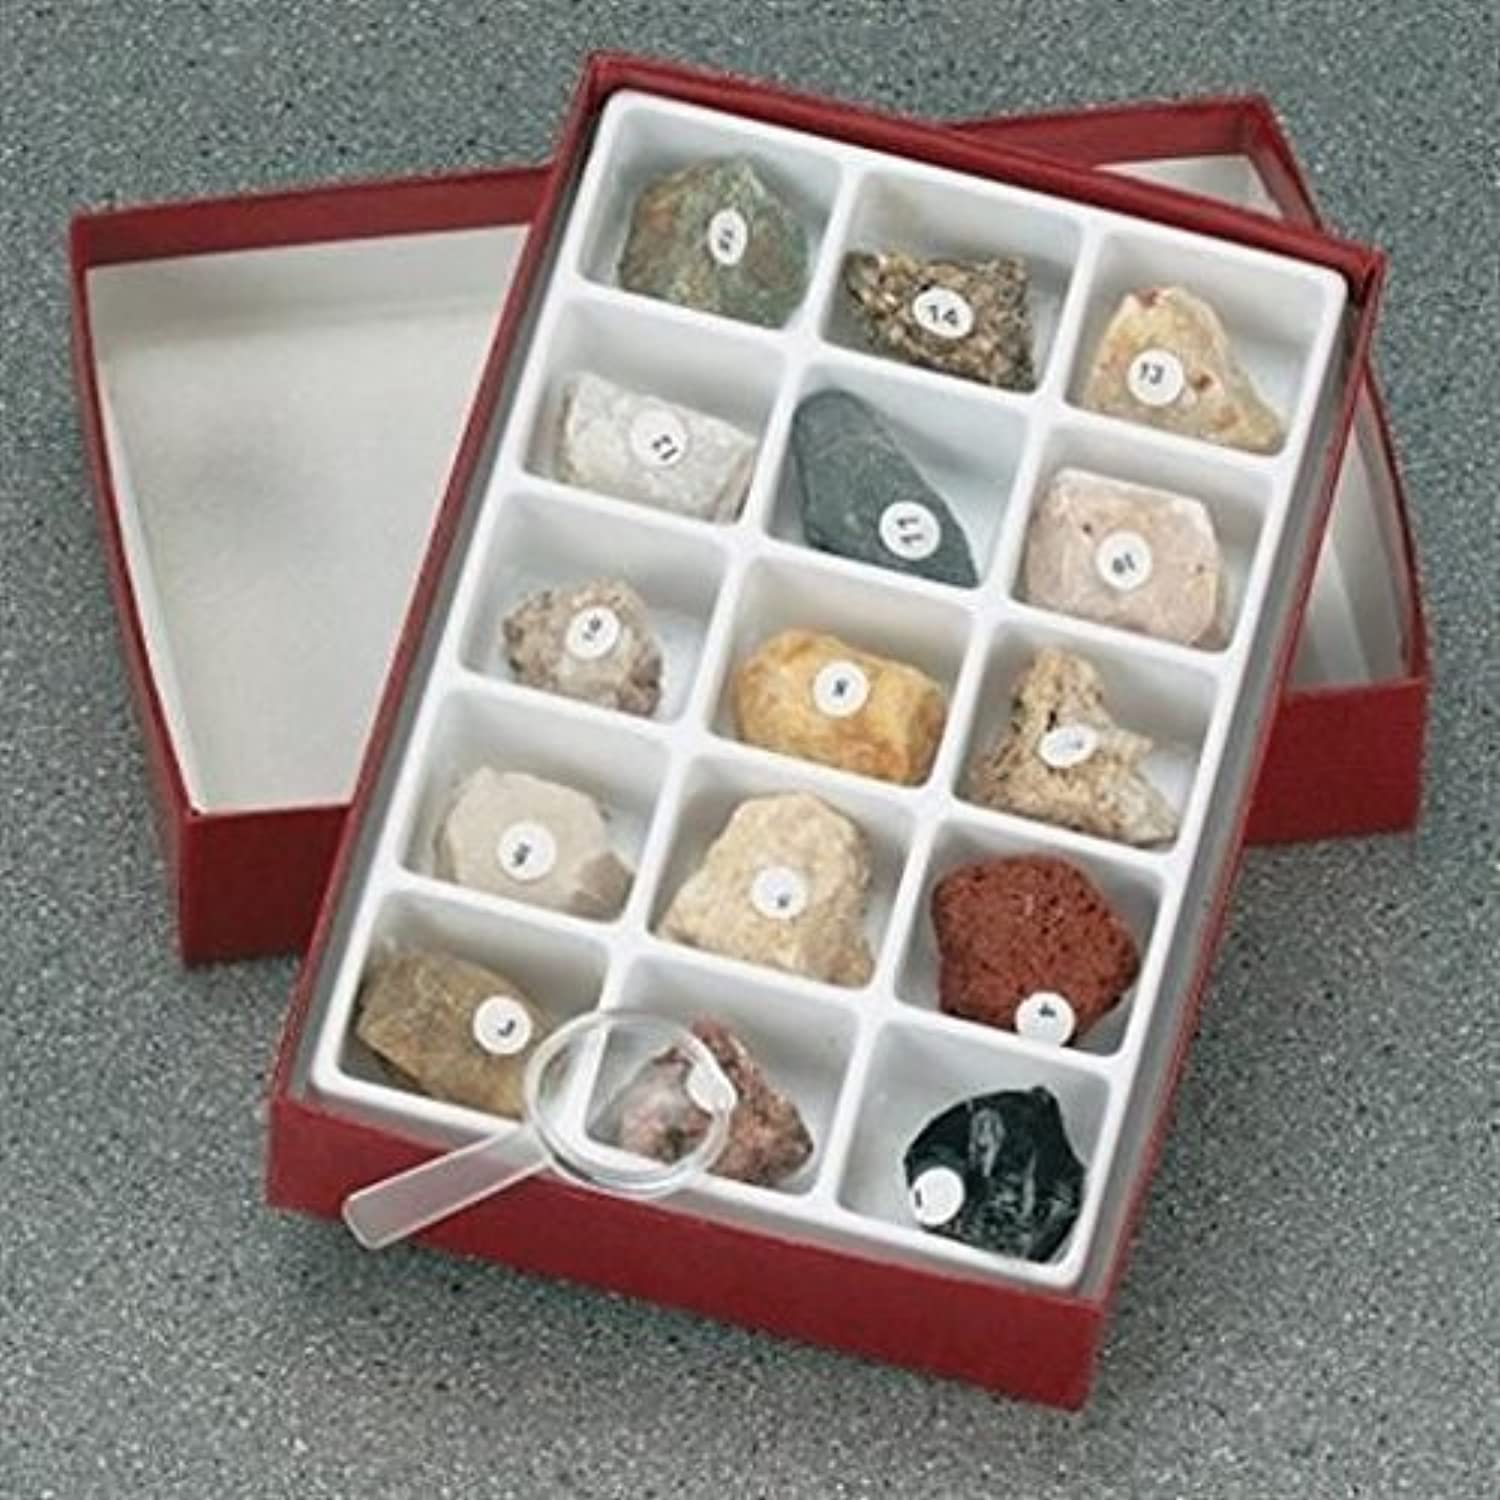 15 Different Rocks Study Set by American Educational Products